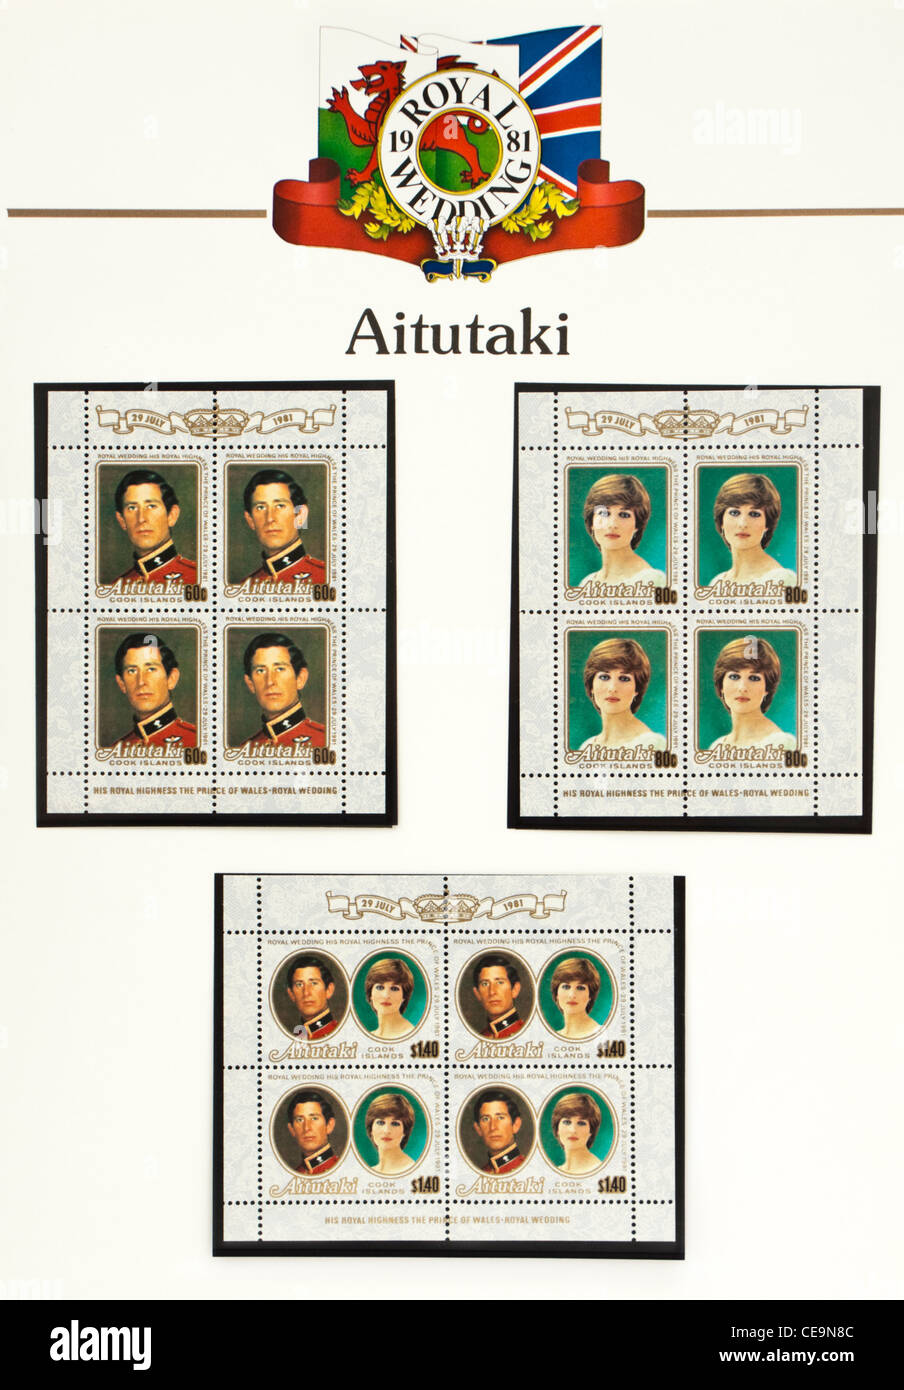 Aitutaki (Cook Islands) page of 'The Royal Wedding' stamp album by Stanley Gibbons (1981) - Stock Image